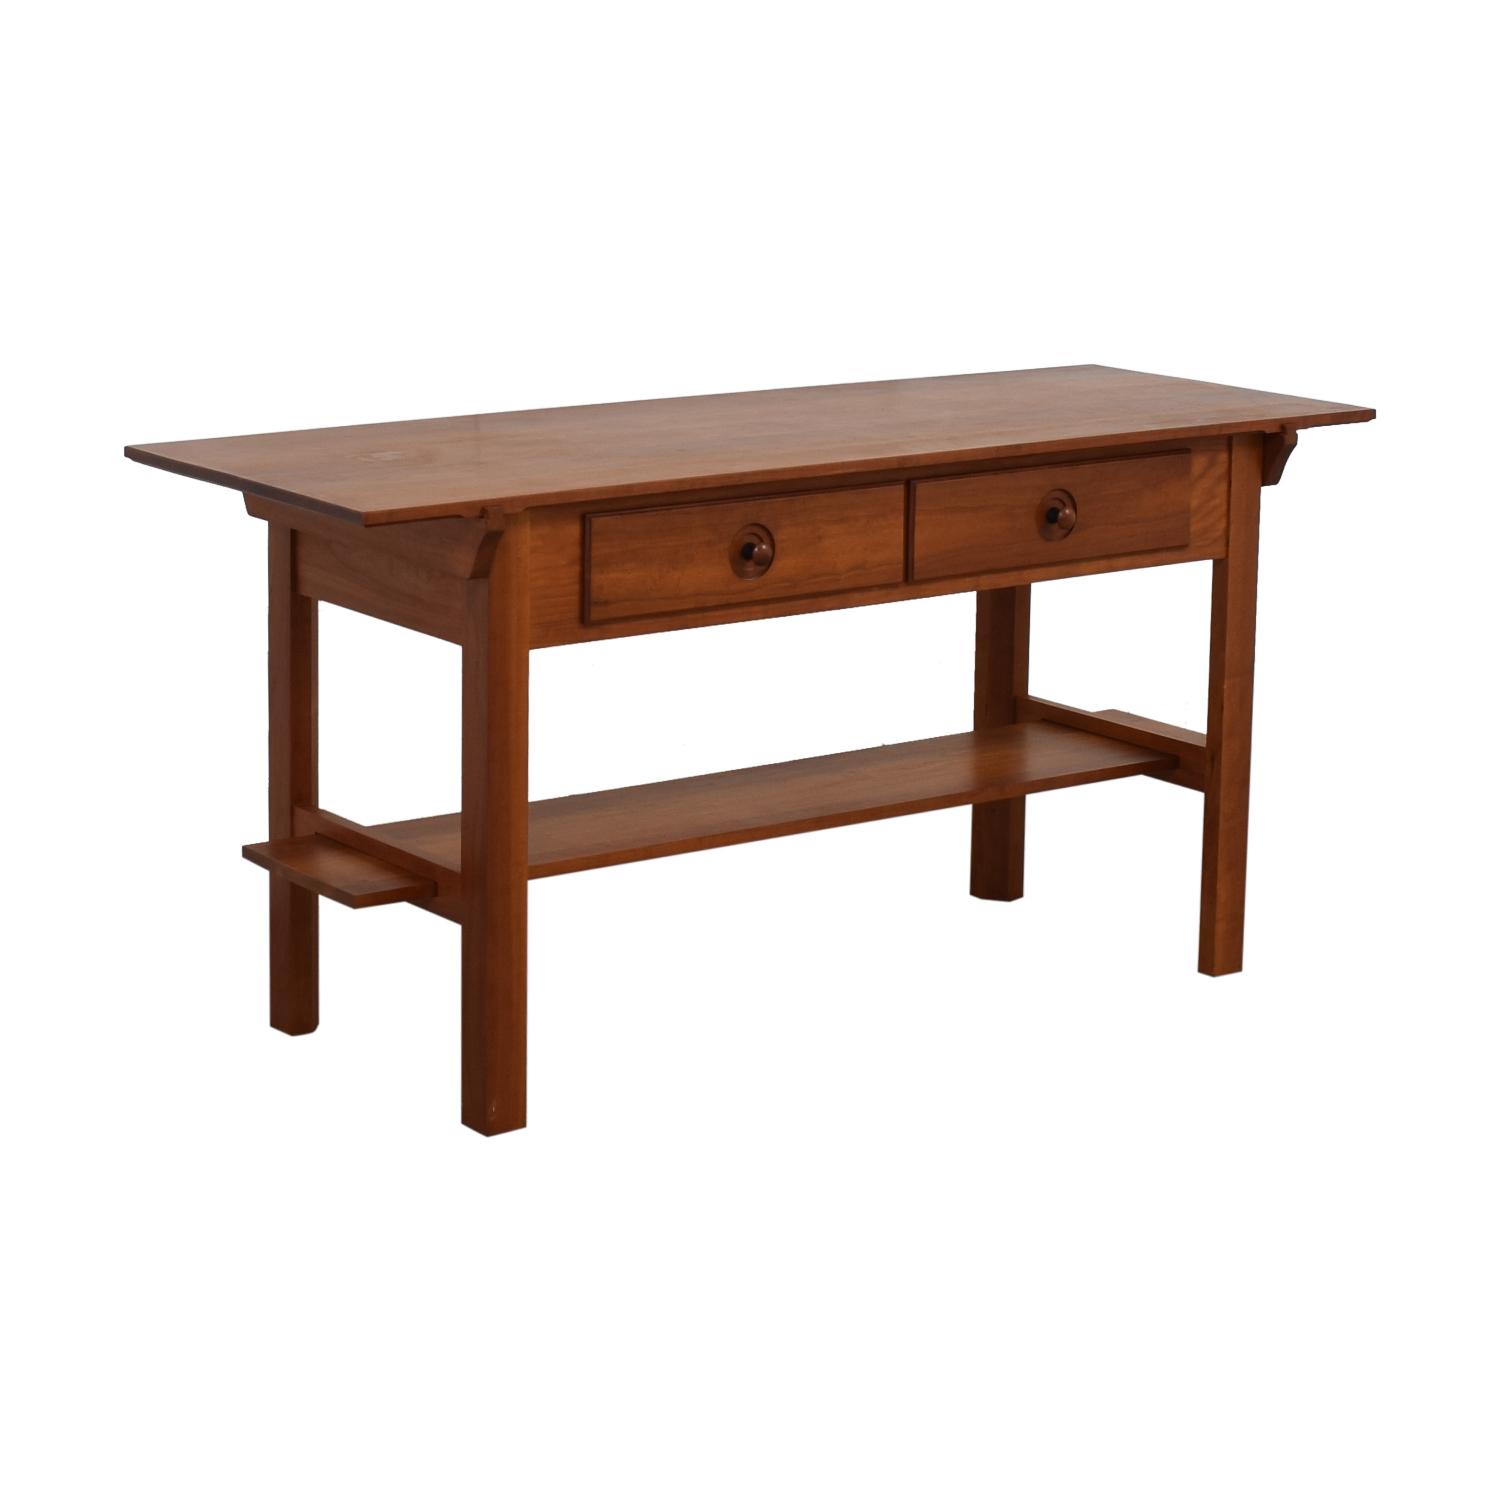 Scott Jordon Scott Jordon Wood Two-Drawer Utility Table